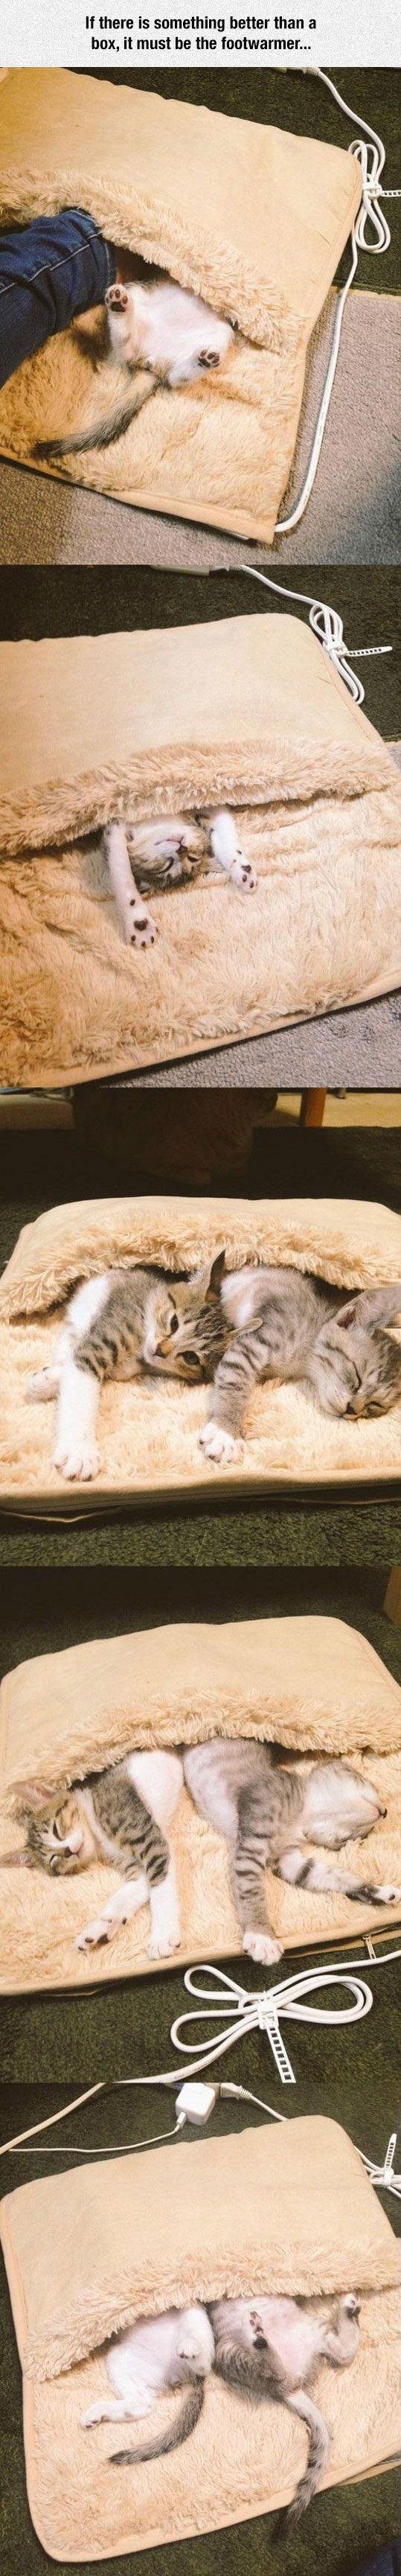 Kittens discover footwarmer cats funny pictures